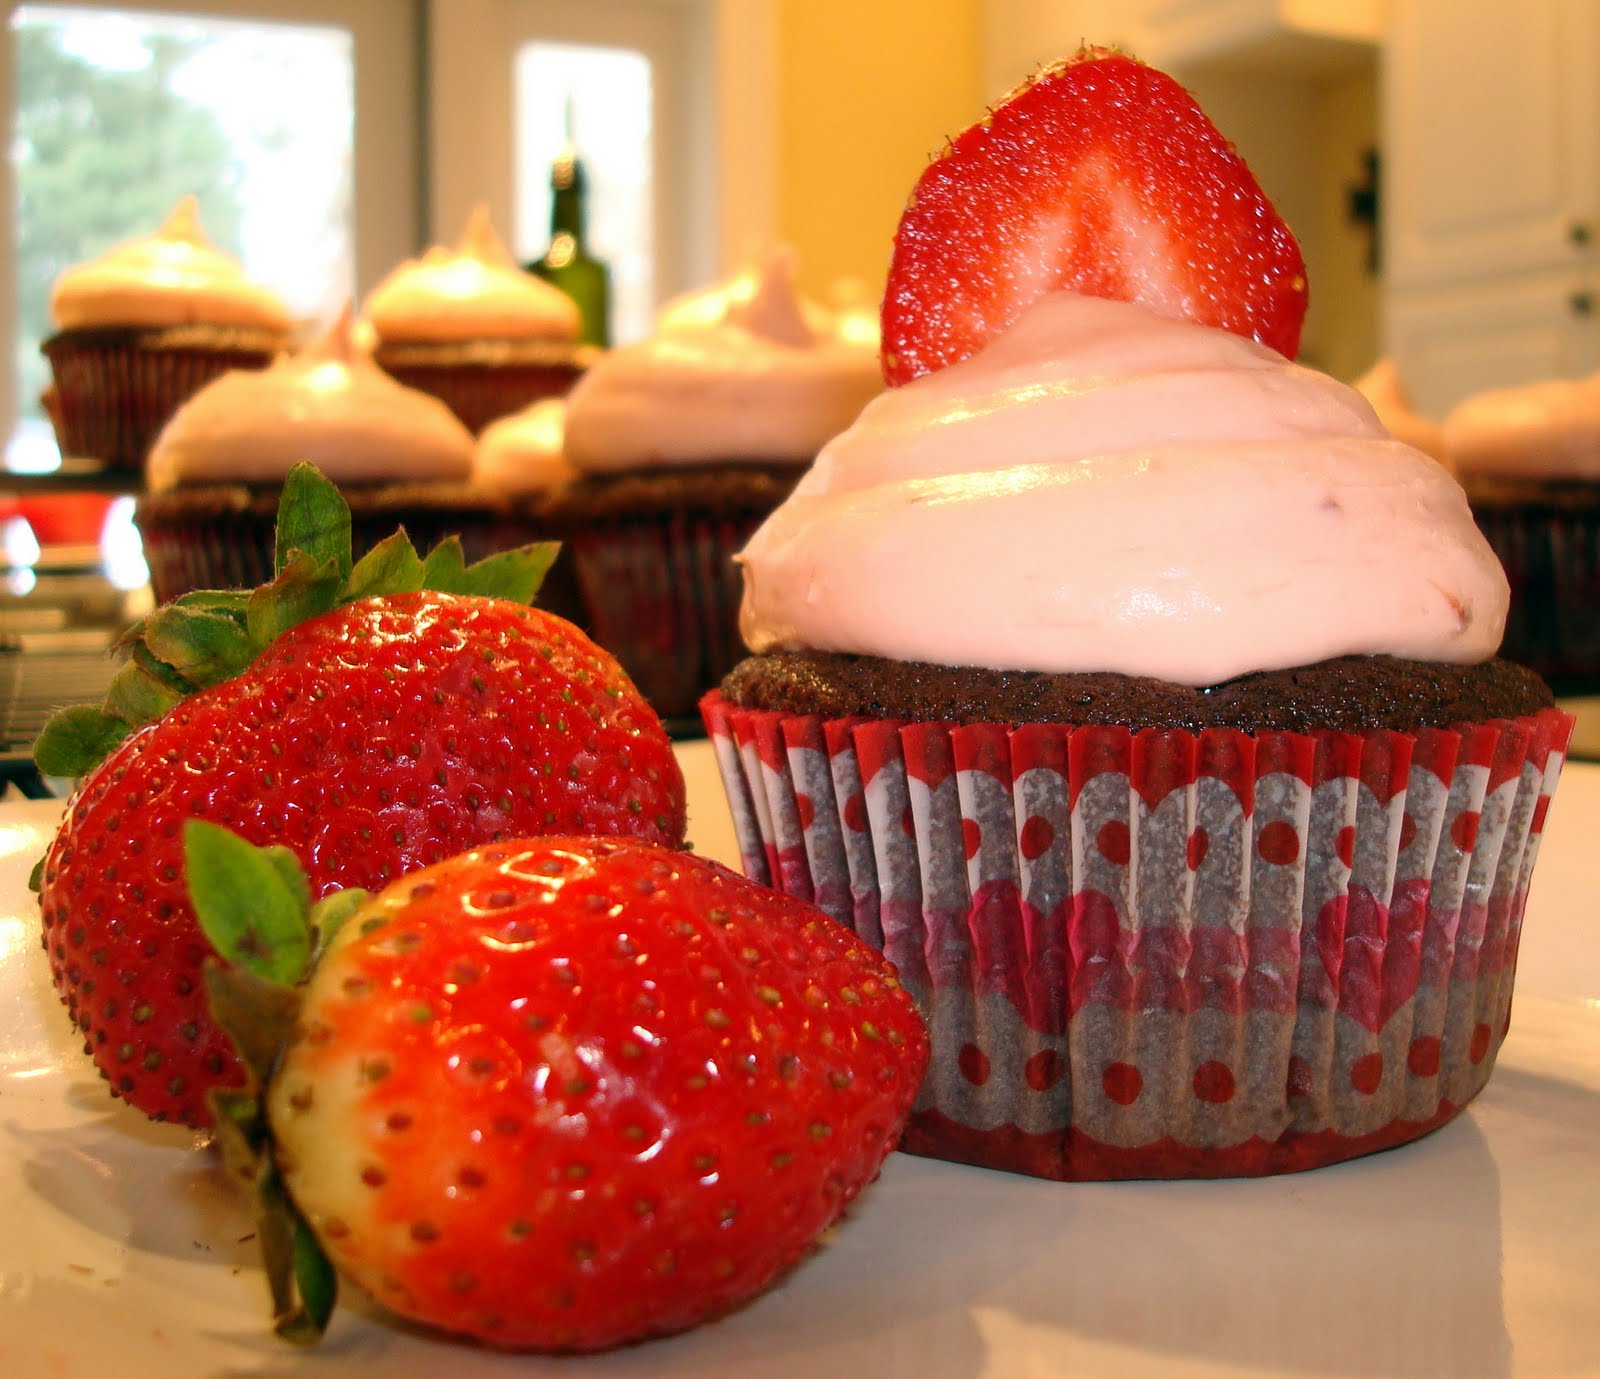 Chocolate Buttermilk Cupcakes with Strawberry Cream Frosting